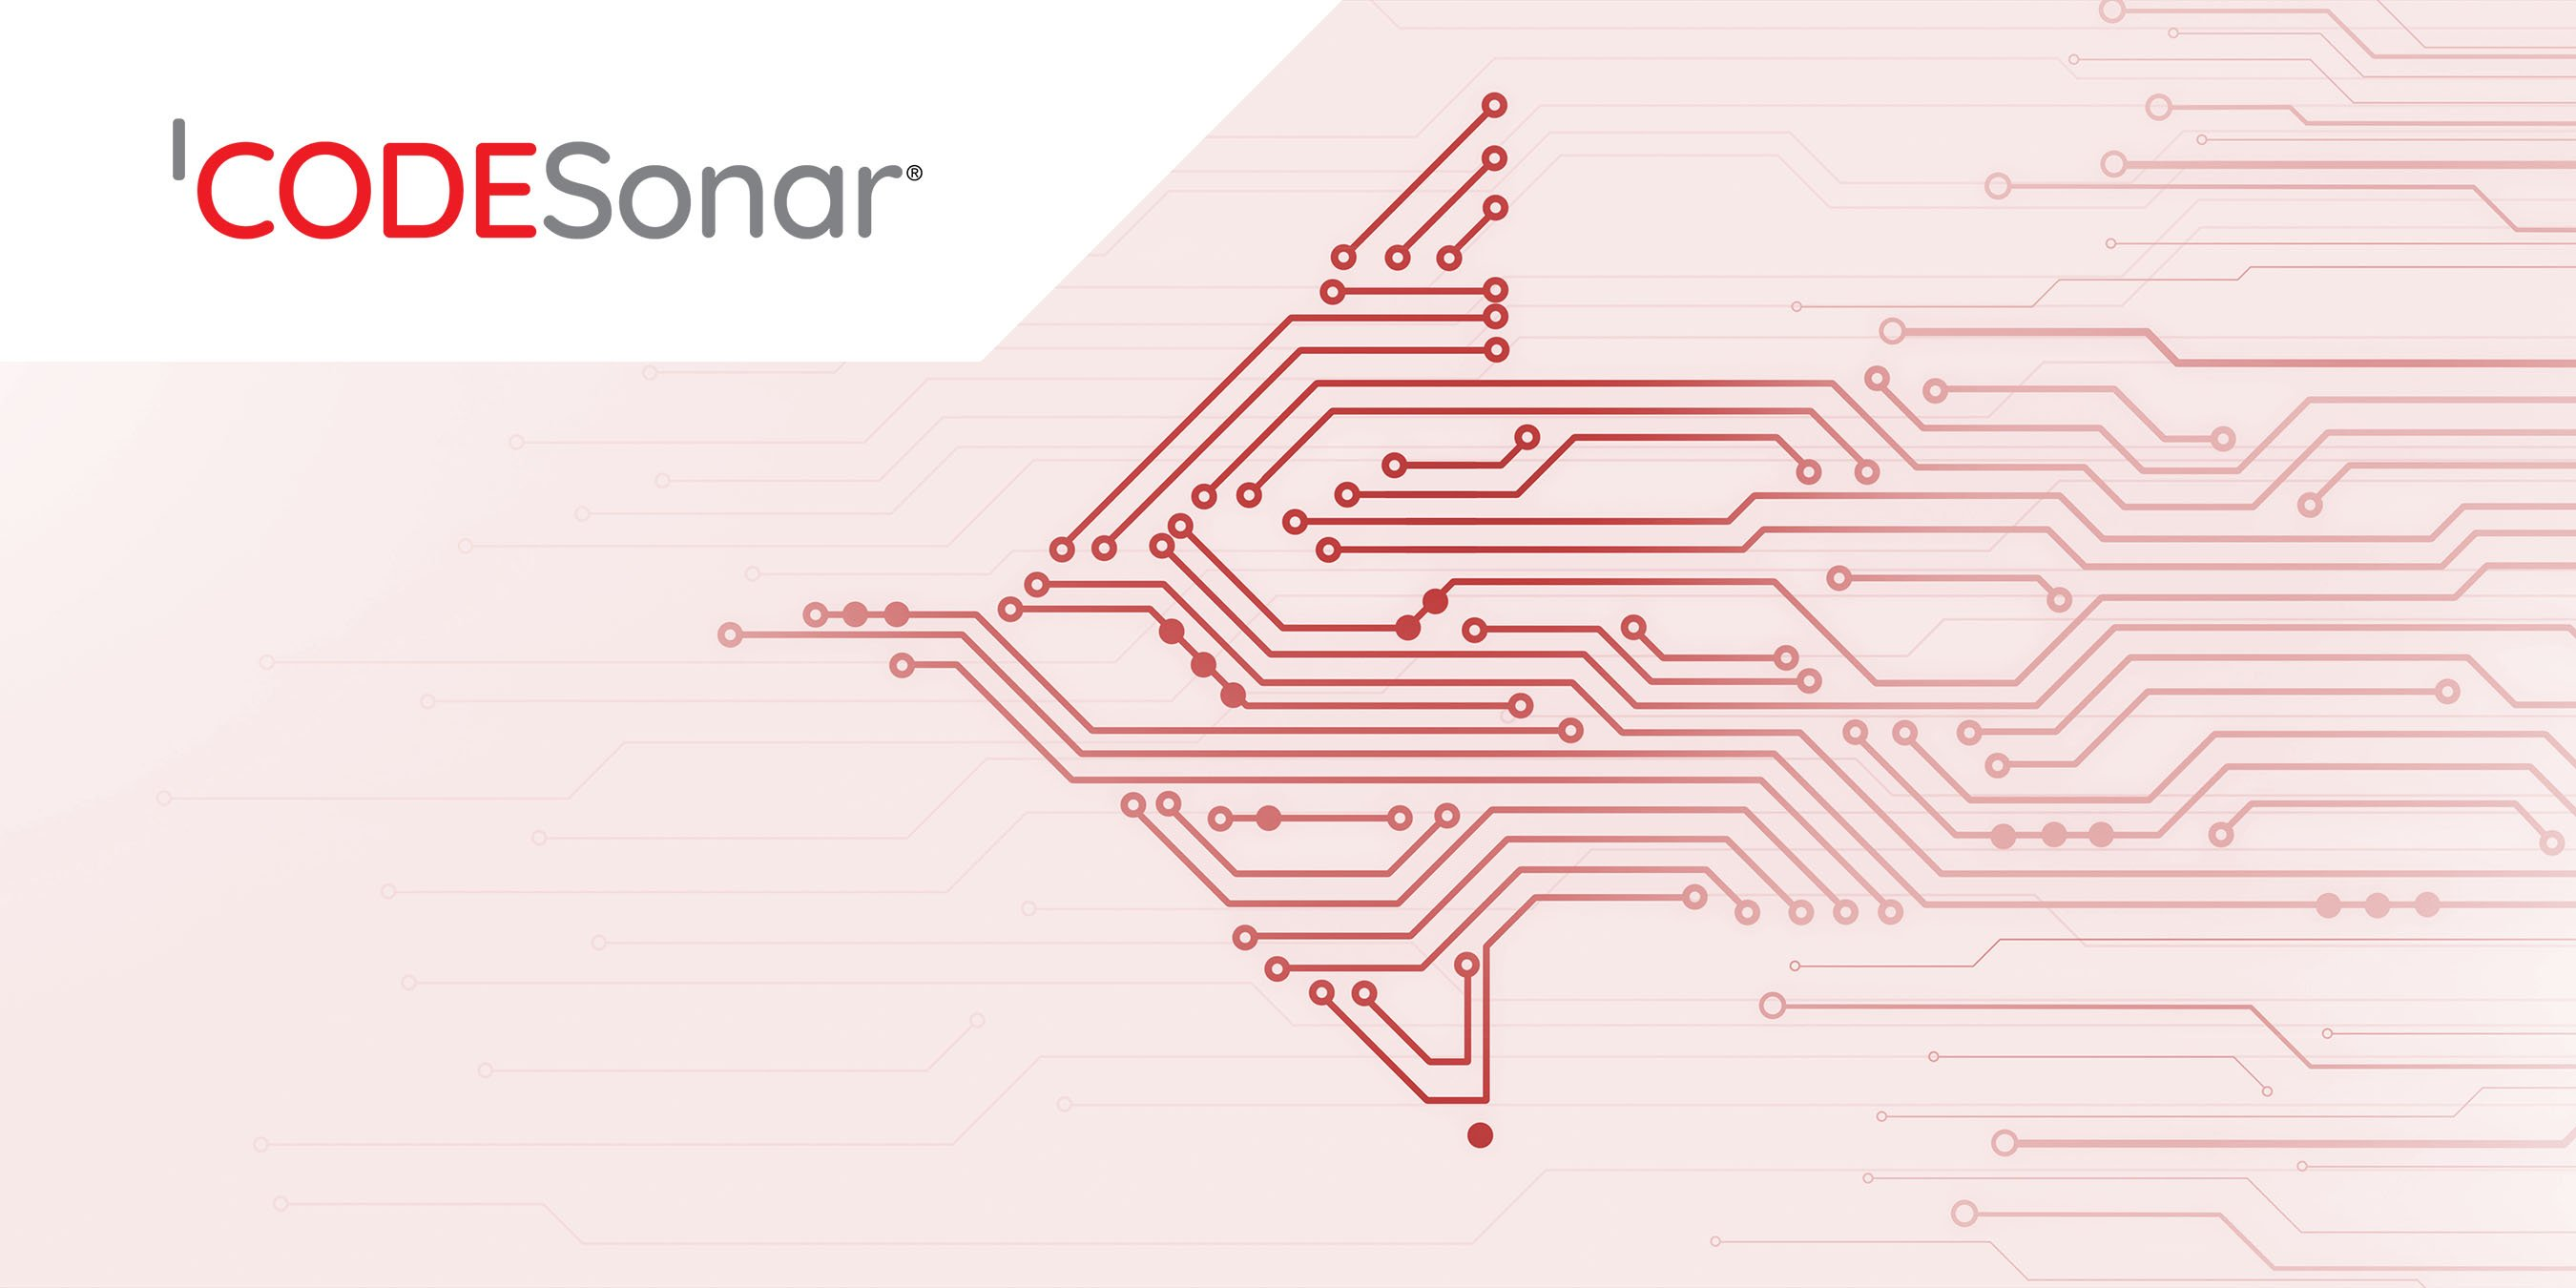 GrammaTech Releases CodeSonar 6.0 with Improved Analysis, Visualization, Reporting and Unified Java Analysis